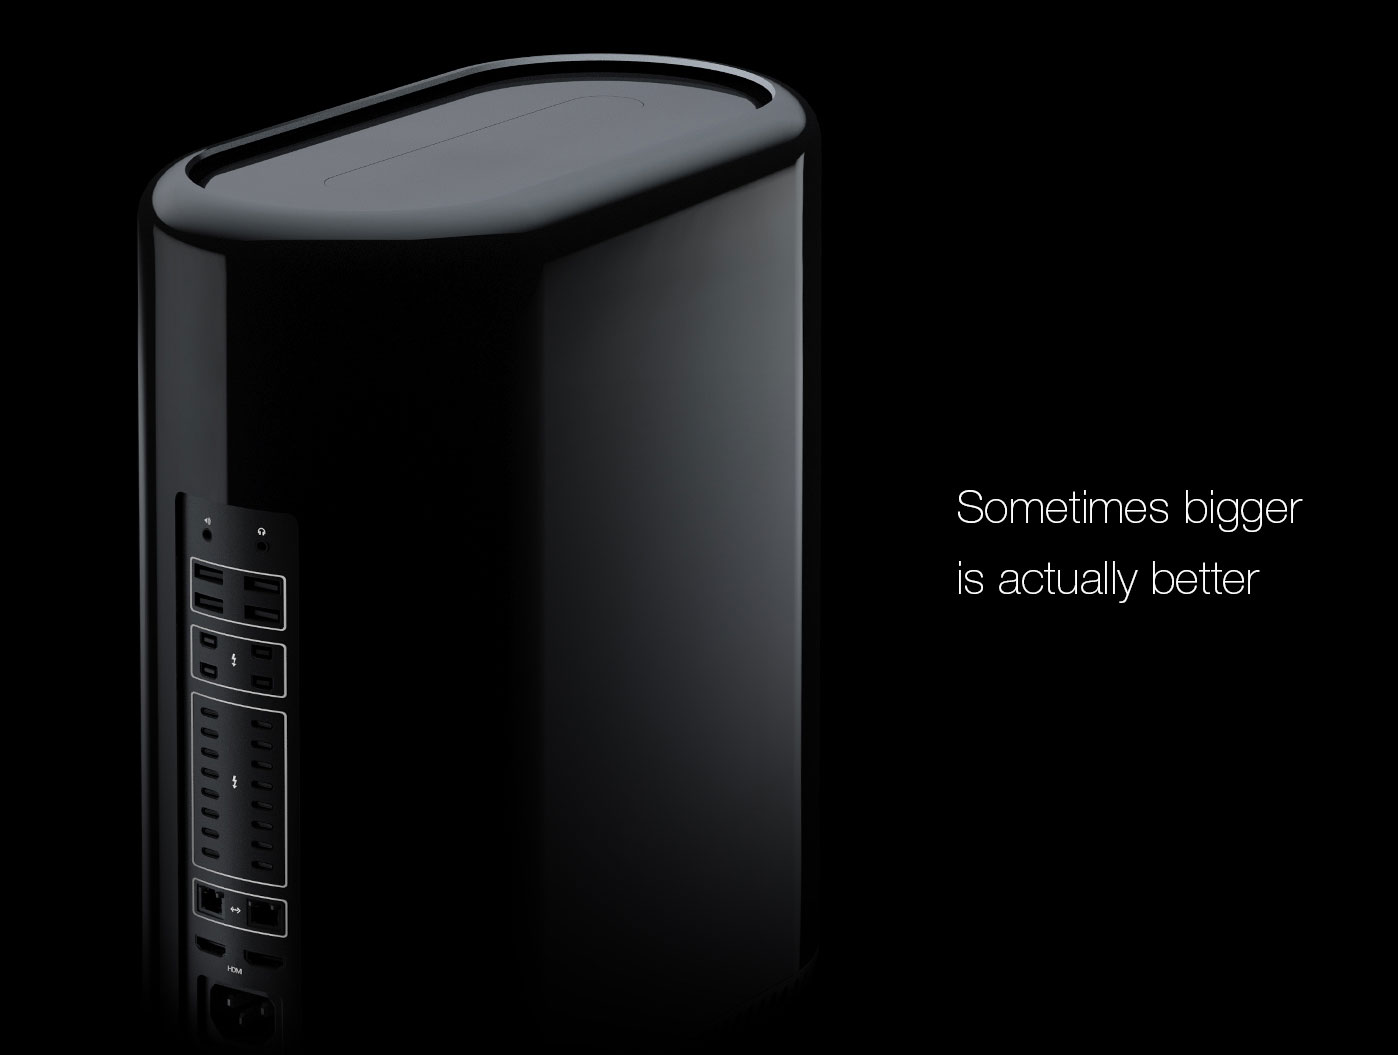 The concept of the Mac Pro 2 16-port USB-C, two Nvidia GTX 1080 and carrying handle